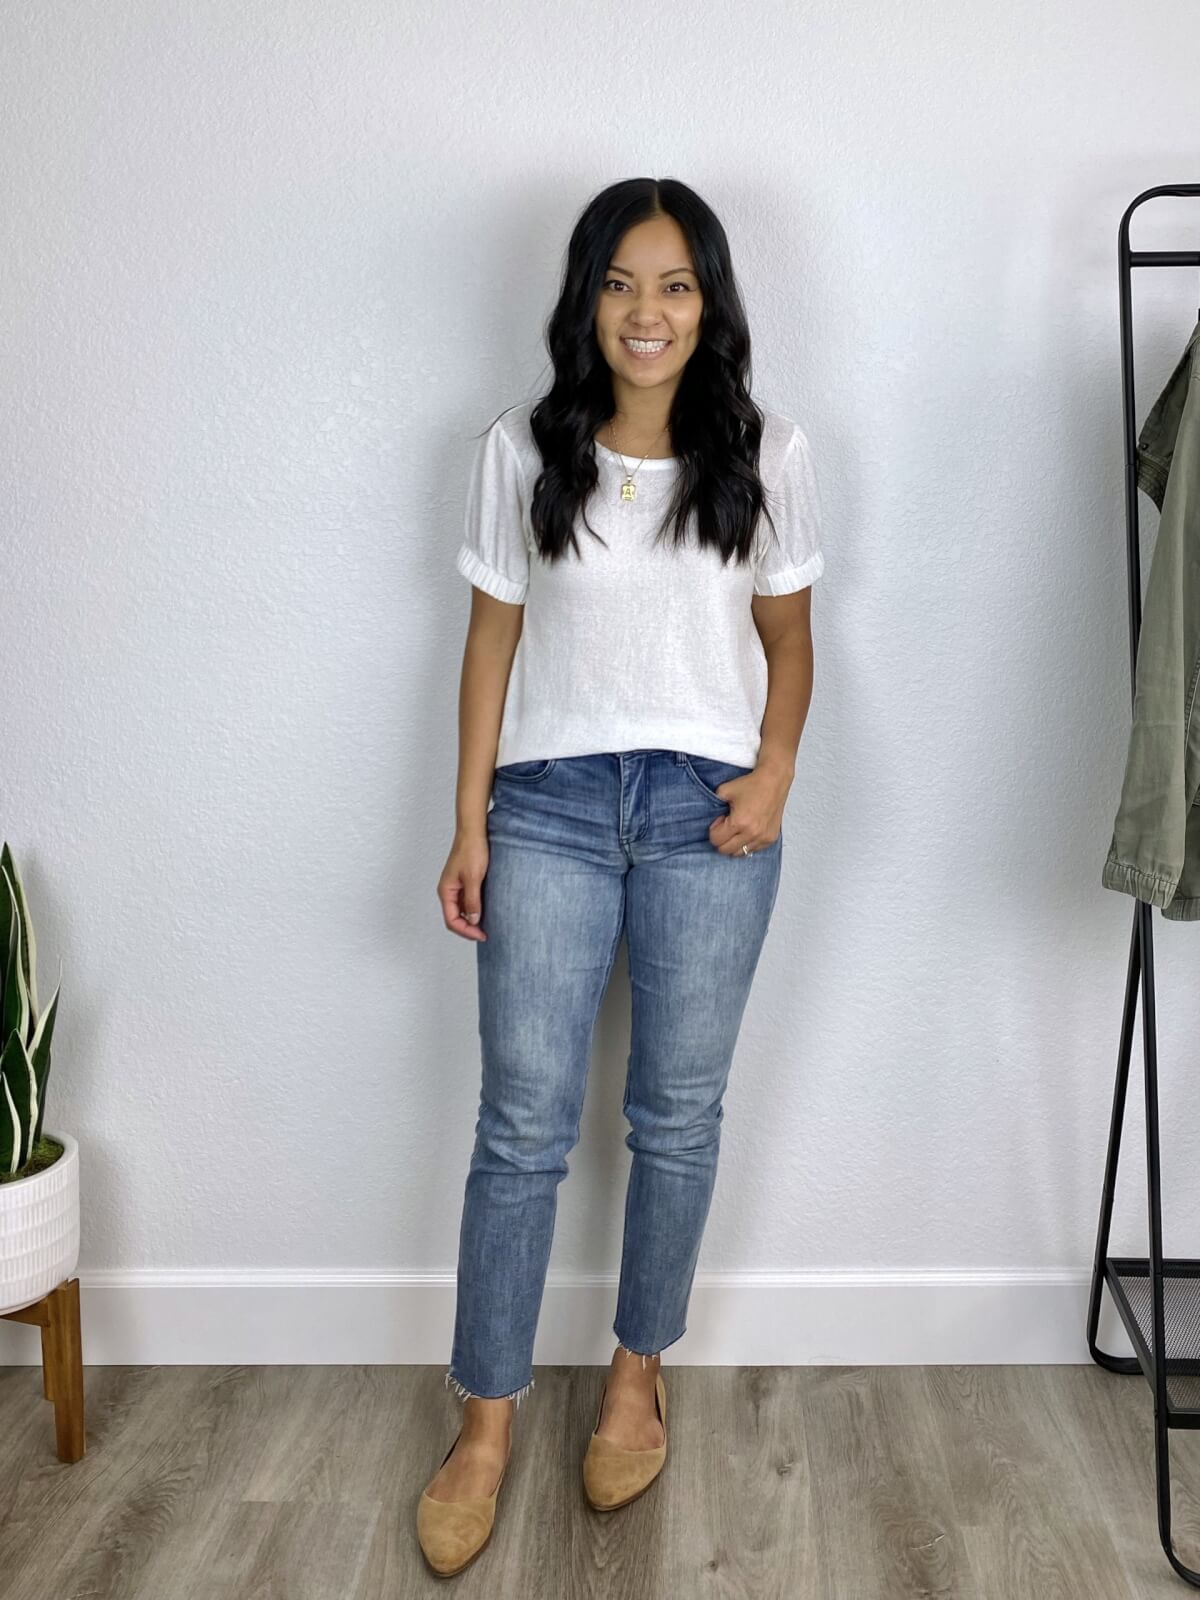 Straight Leg Jeans Outfit for Fall: White puff sleeve t-shirt, light wash raw hem skinny jeans, tan suede flats, gold pendant necklace